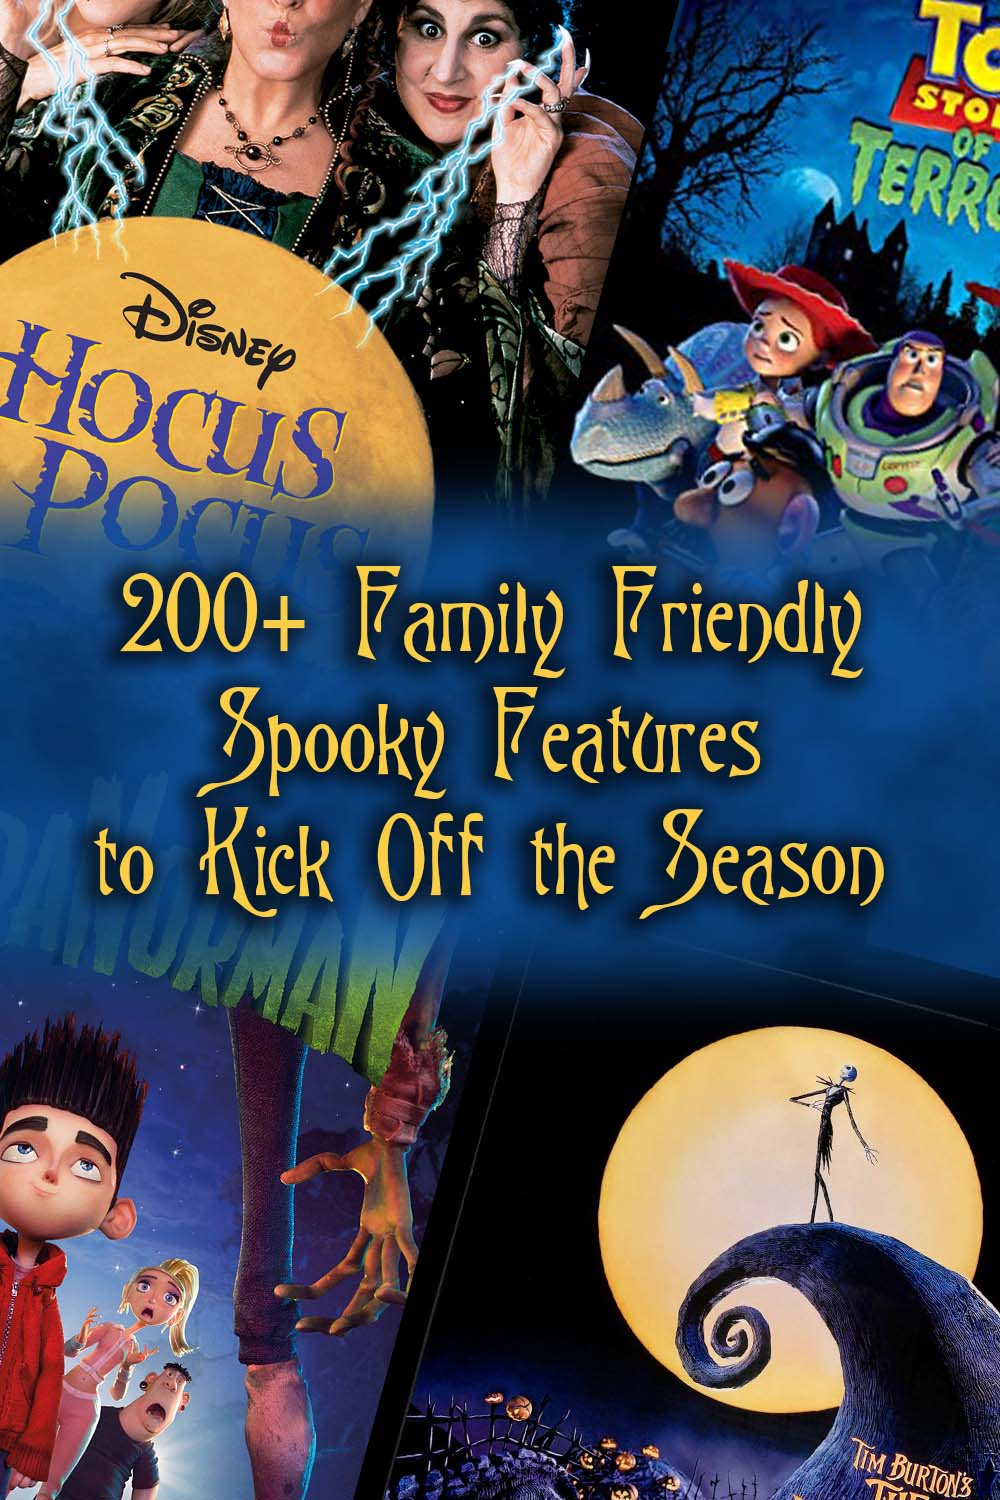 Looking for something to watch with your kids this Halloween? Here is a list of 200+ family friendly spooky features to enjoy this season!